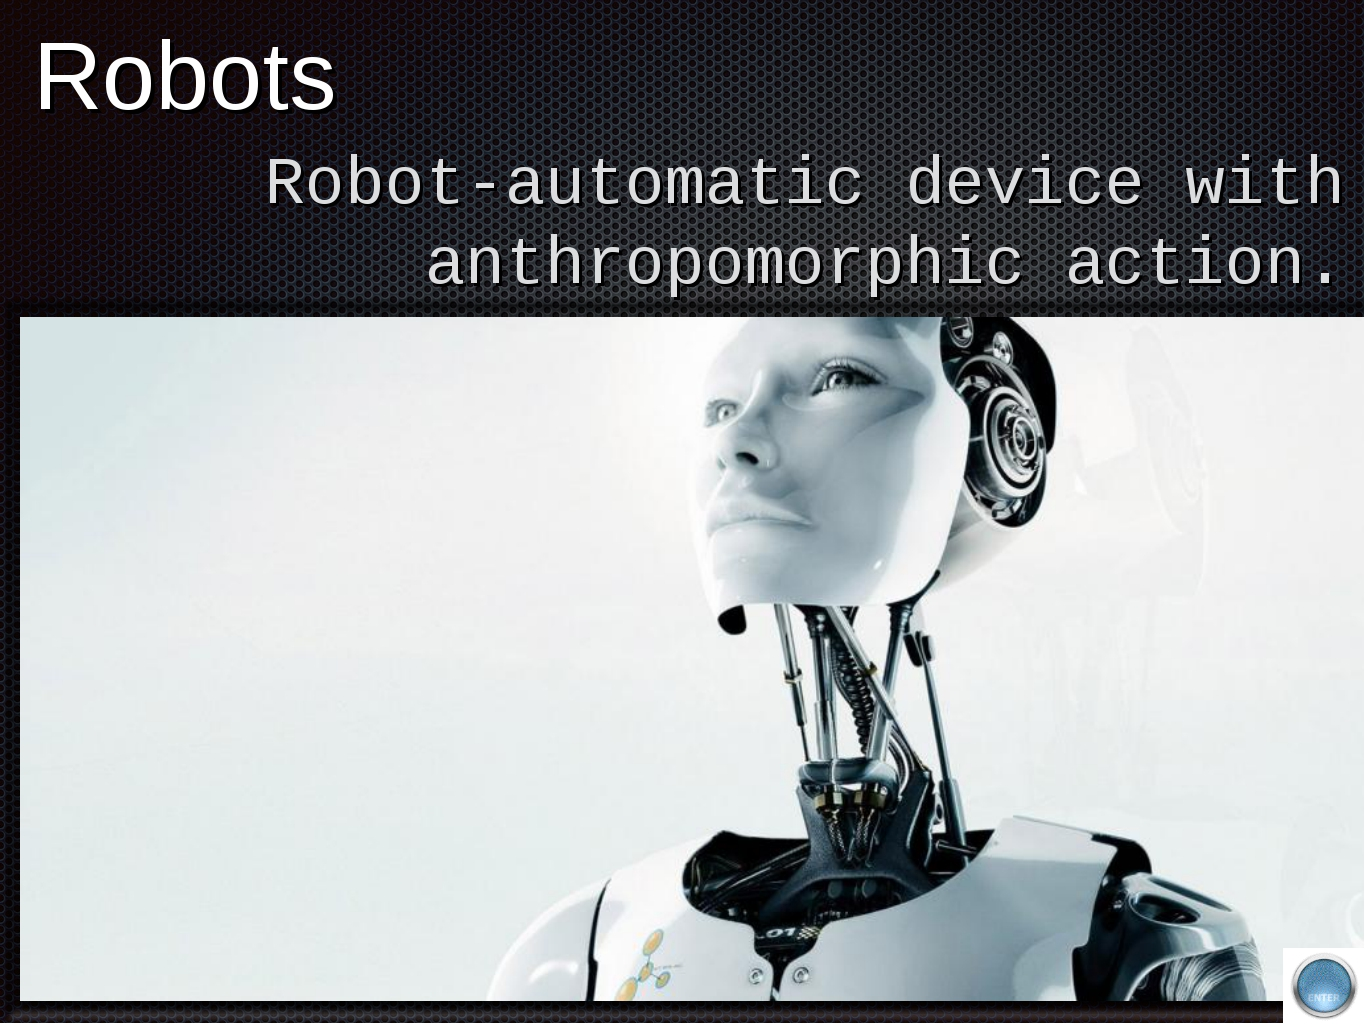 Robots Robot-automatic device with anthropomorphic action.